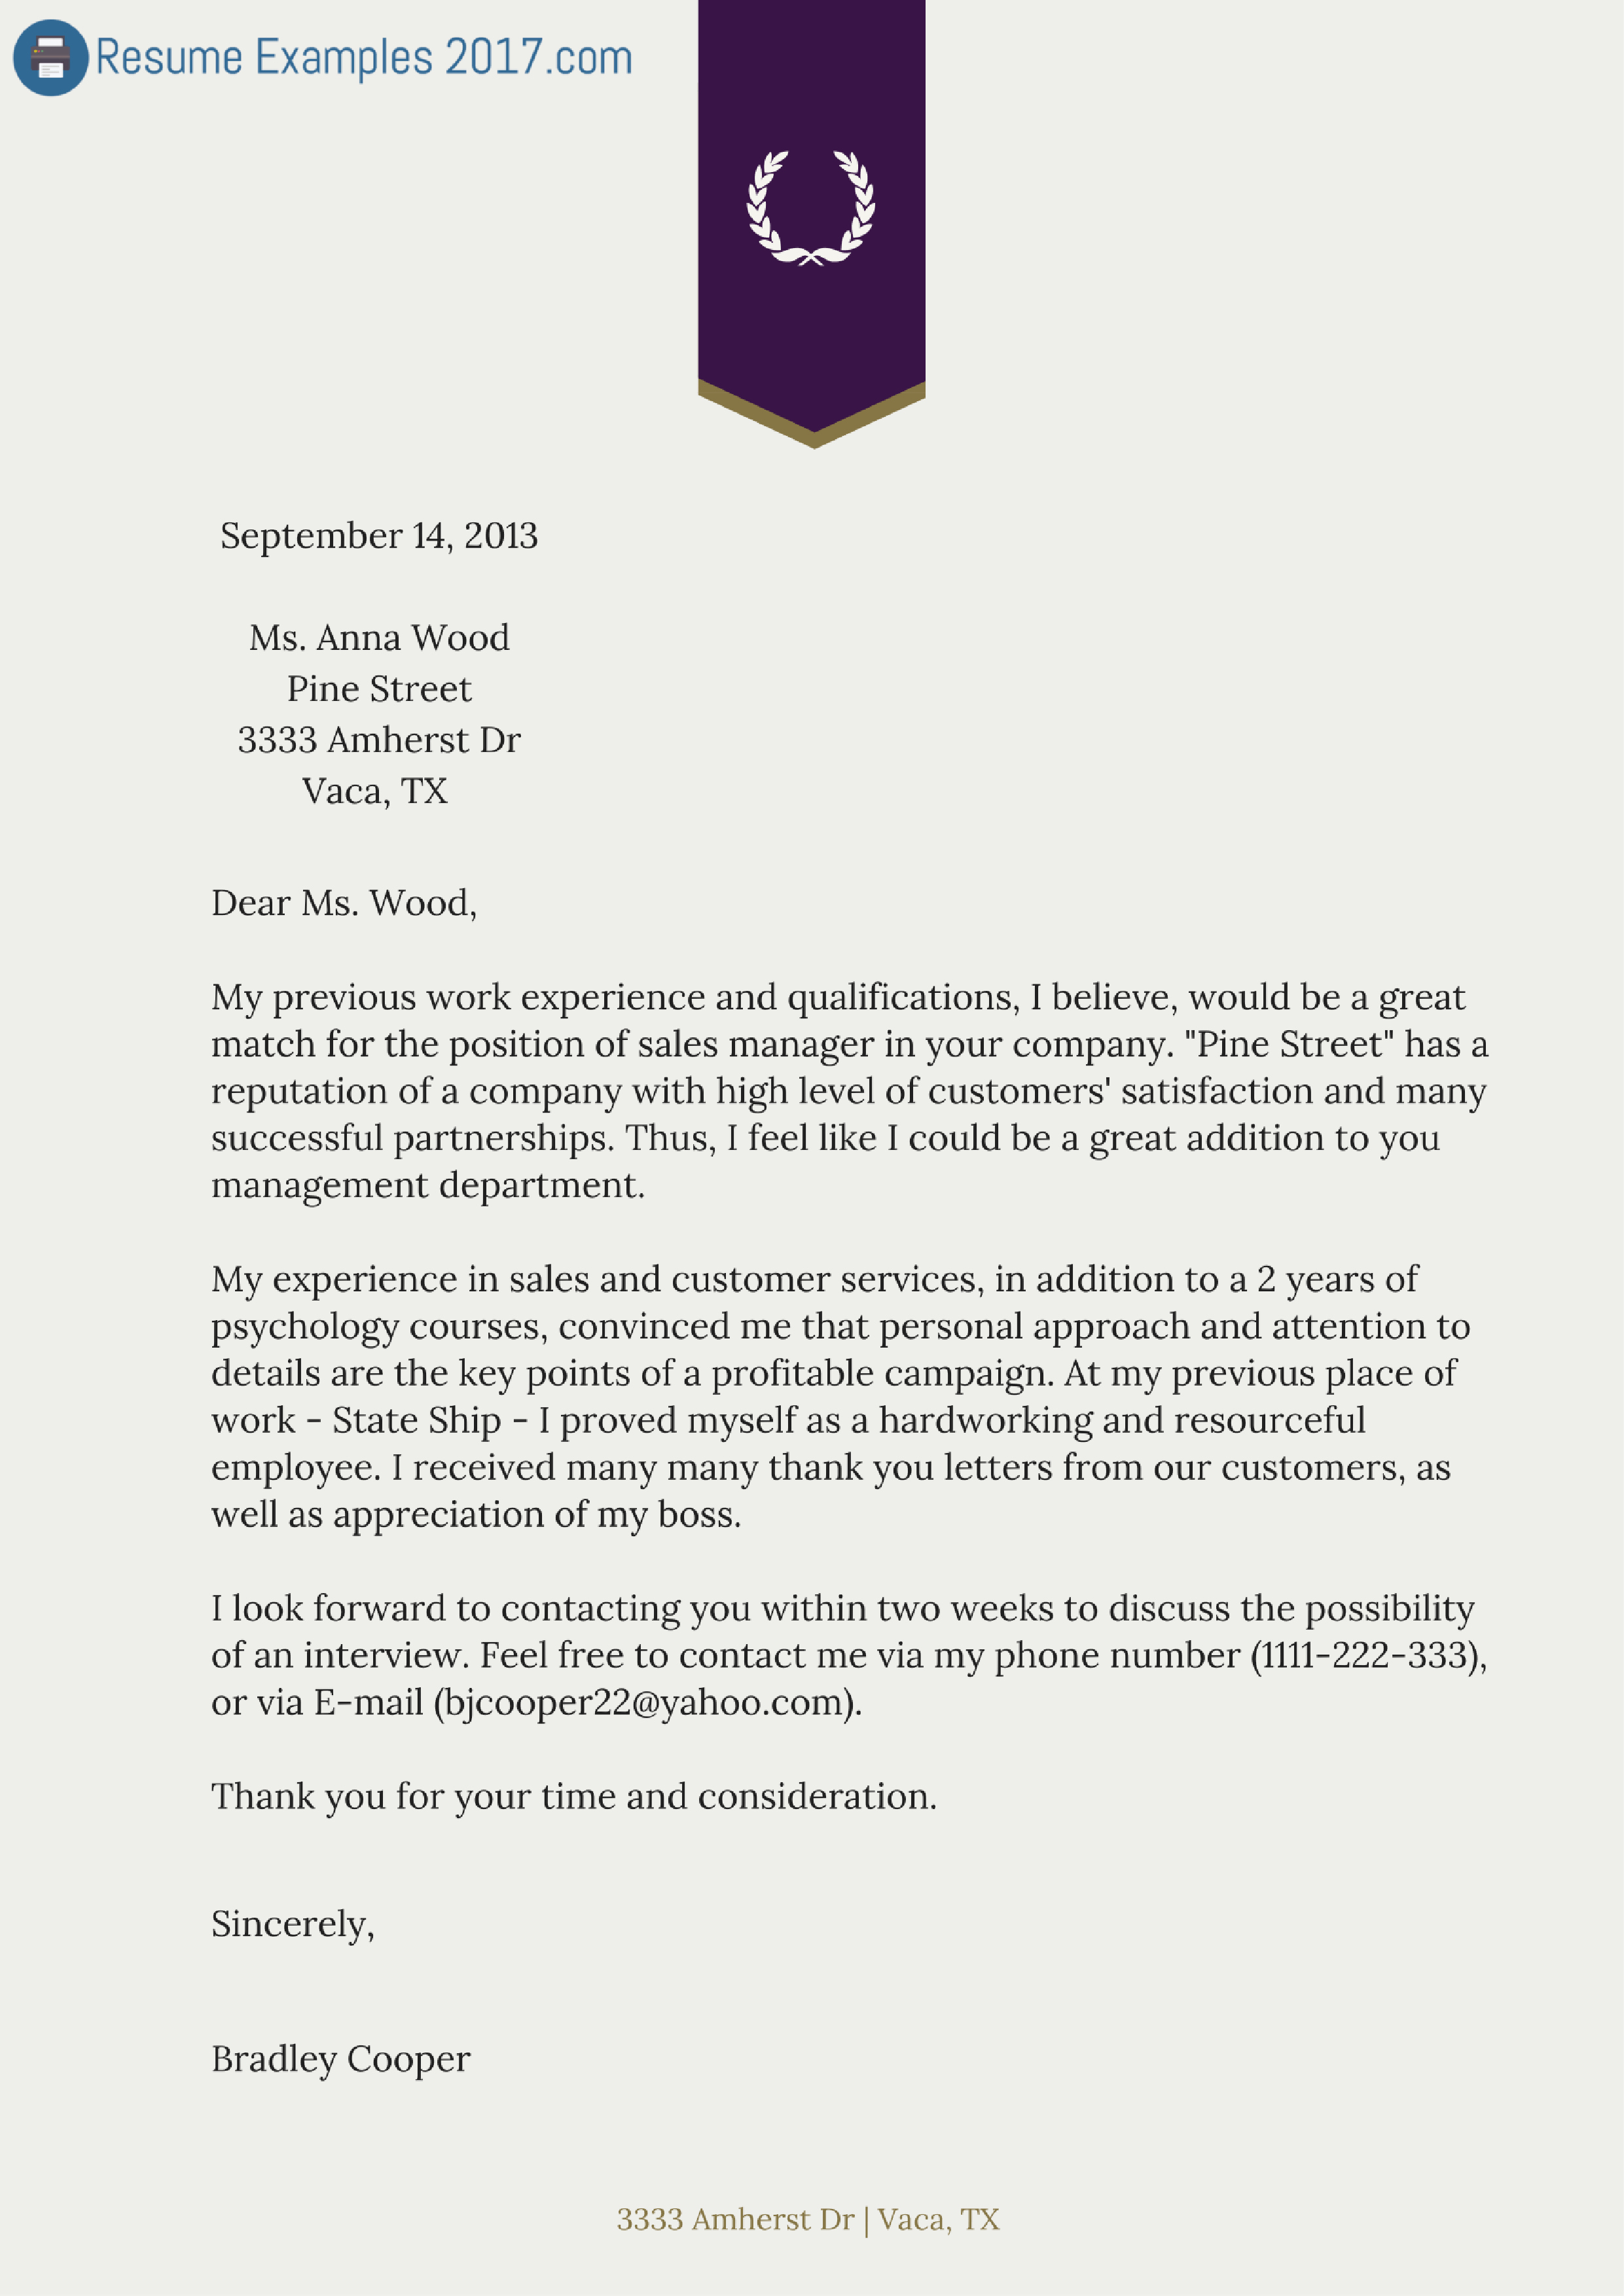 Professional Cover Letters for Resume Best Of Download Cover Letter Samples